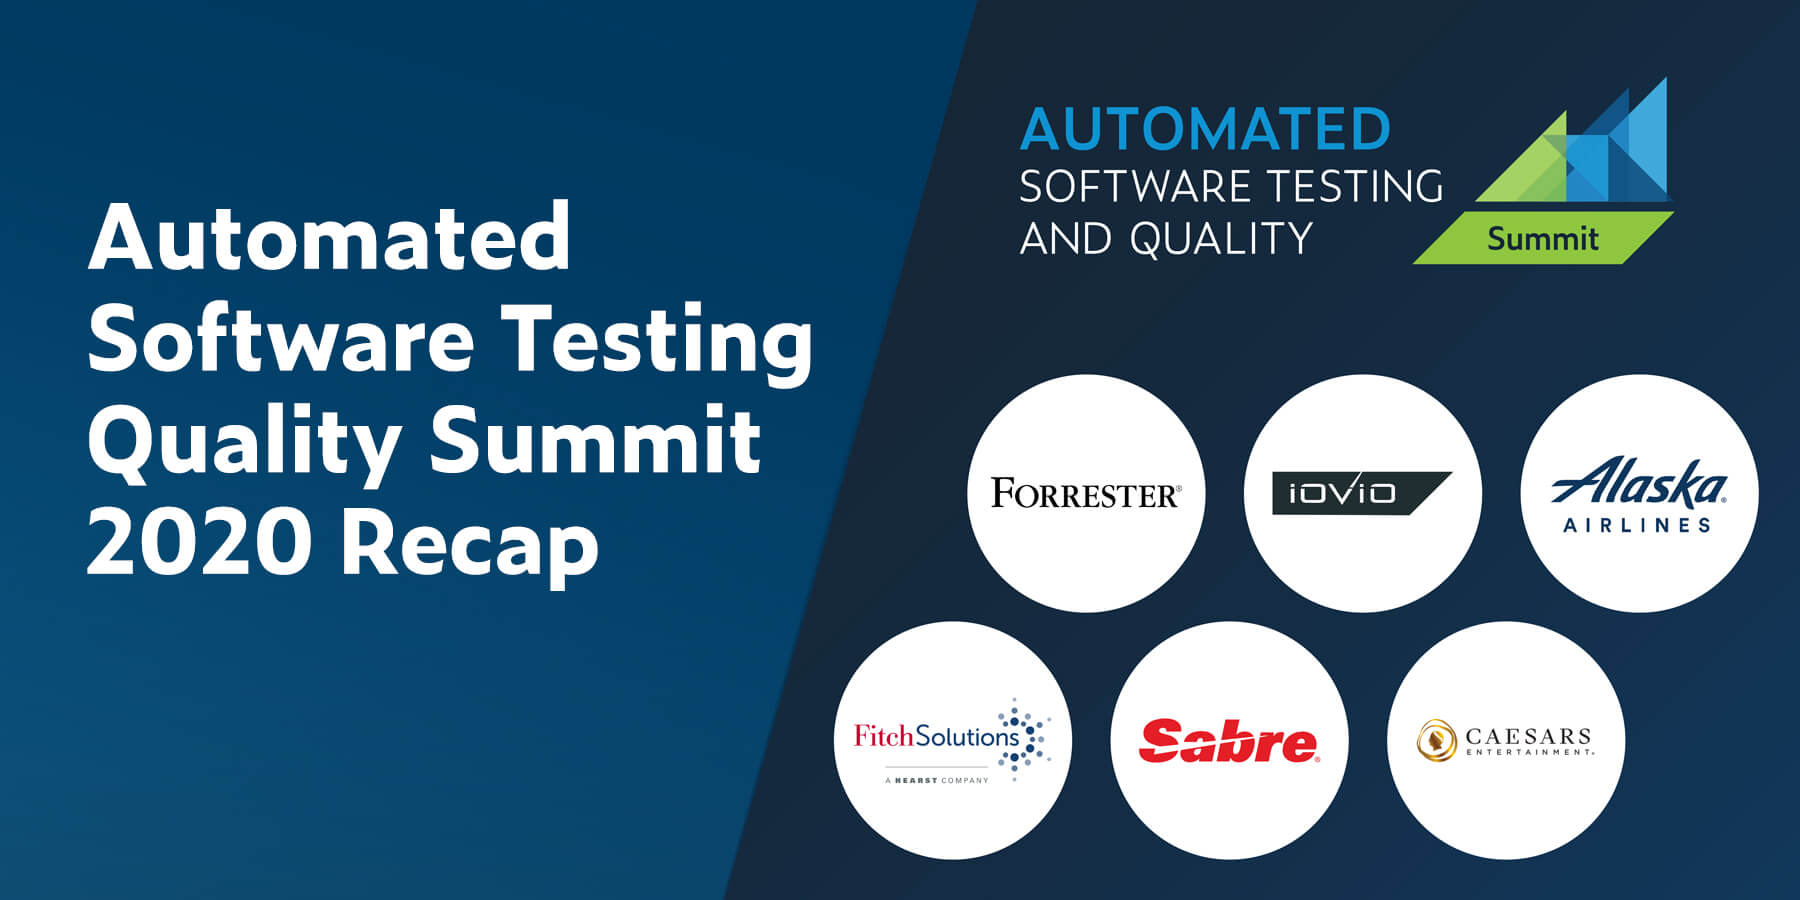 Automated Software Testing Quality Summit 2020 Recap